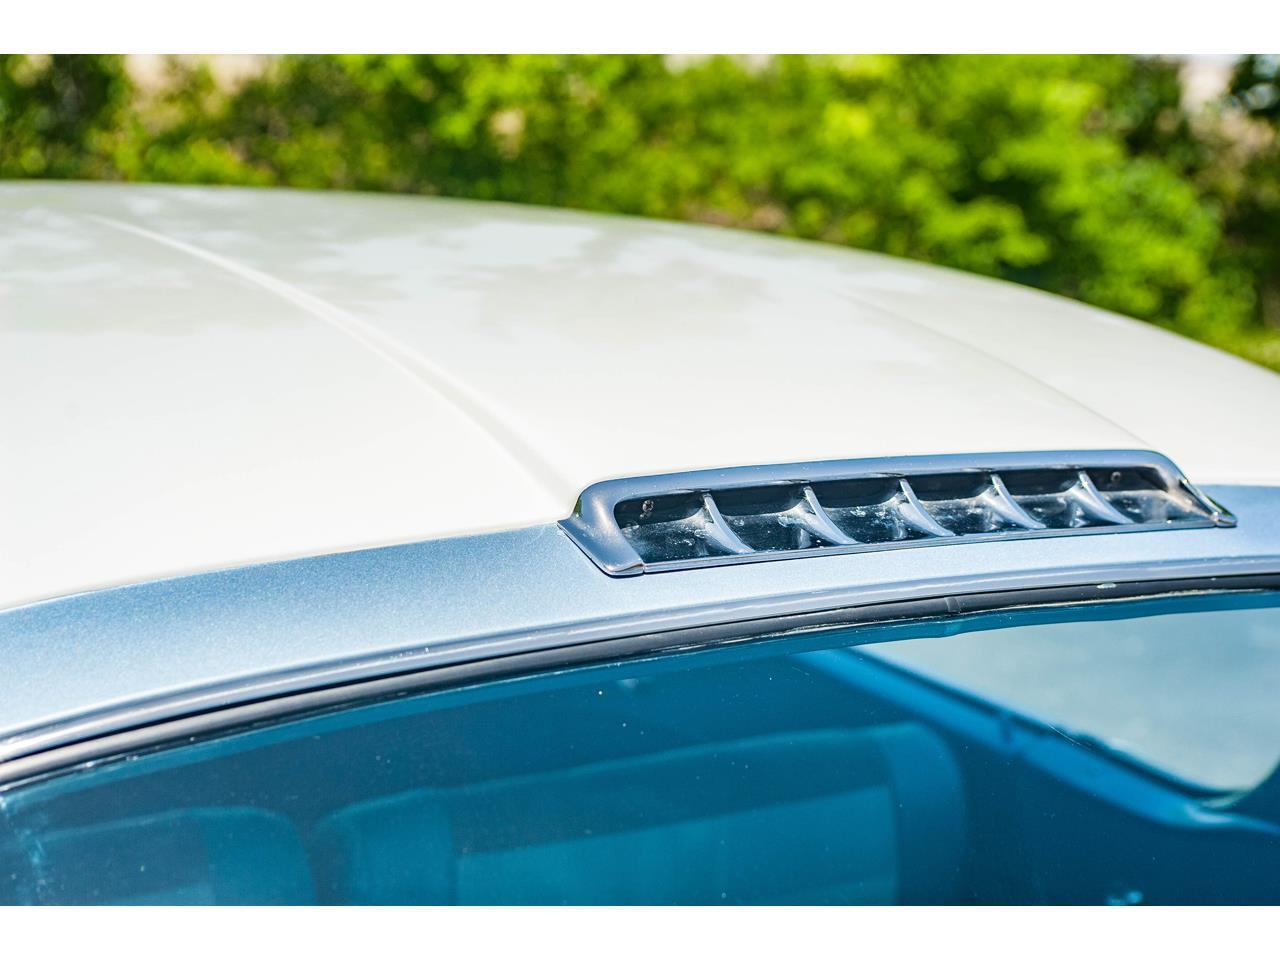 Large Picture of '58 Chevrolet Impala - $62,000.00 Offered by Gateway Classic Cars - St. Louis - QB9Q